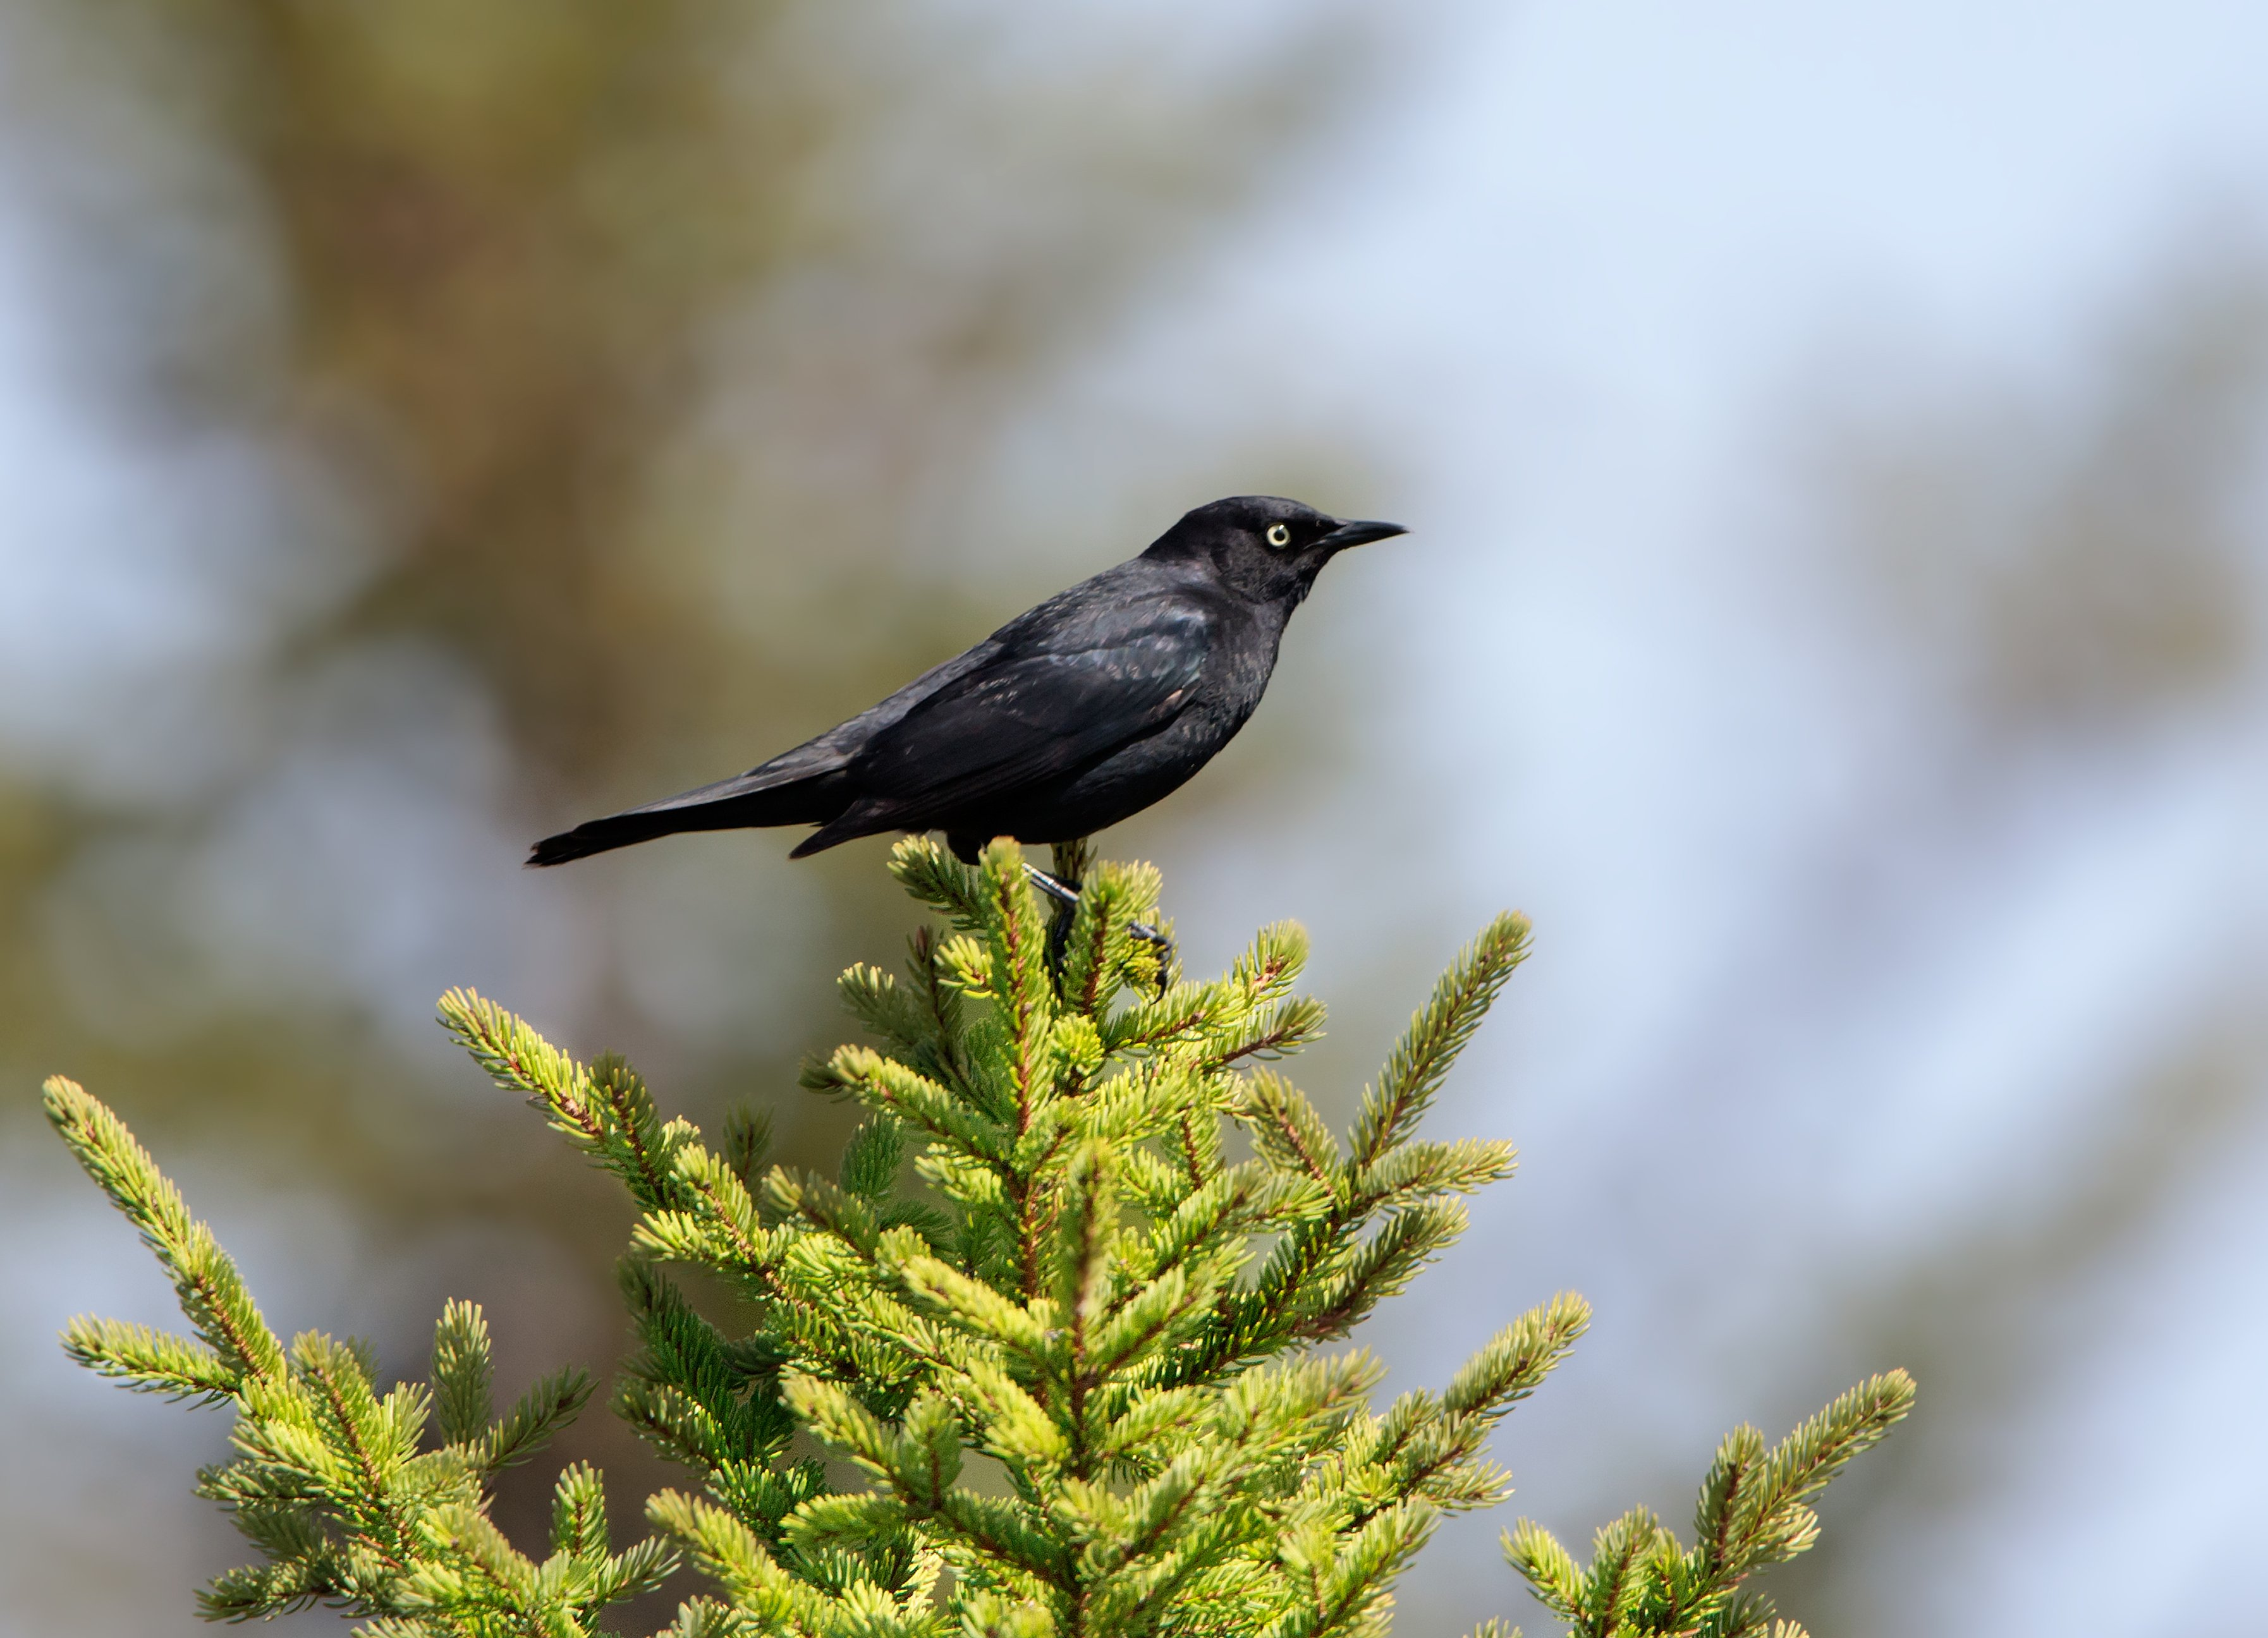 Birds in the boreal forest will venture further north as the climate changes